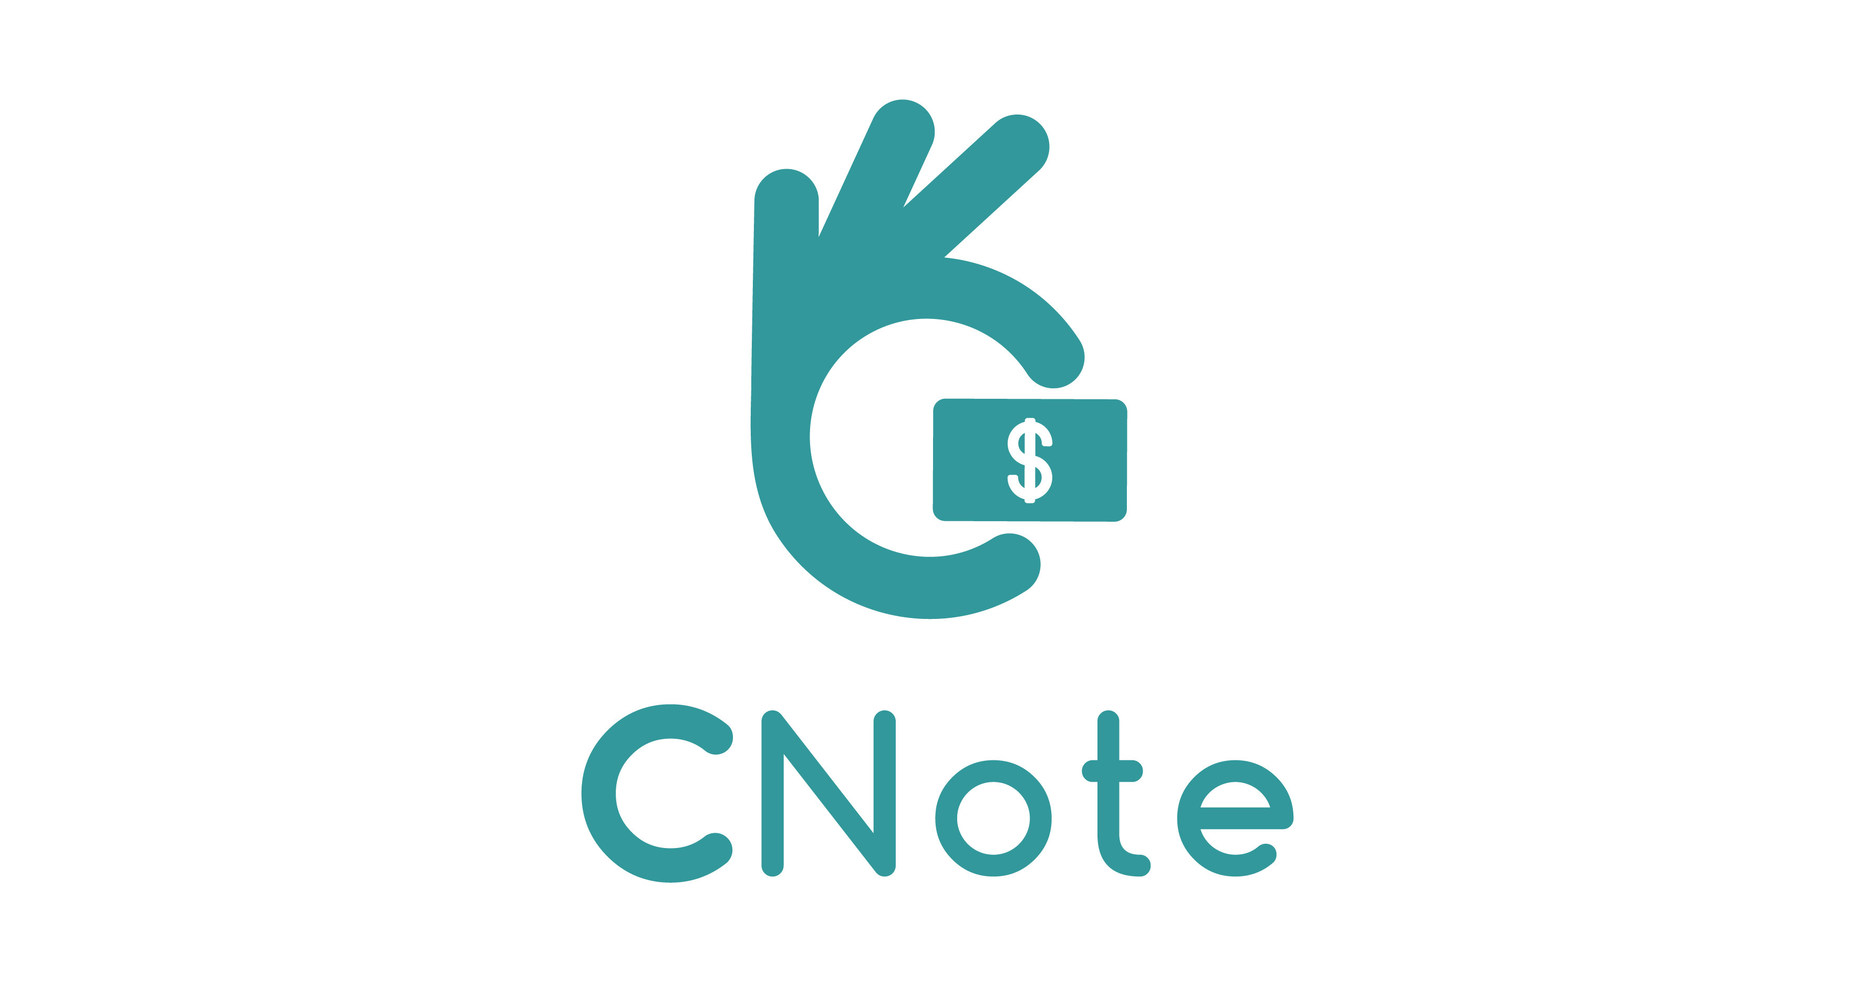 Cnote cryptocurrency wikipedia betting terms ats